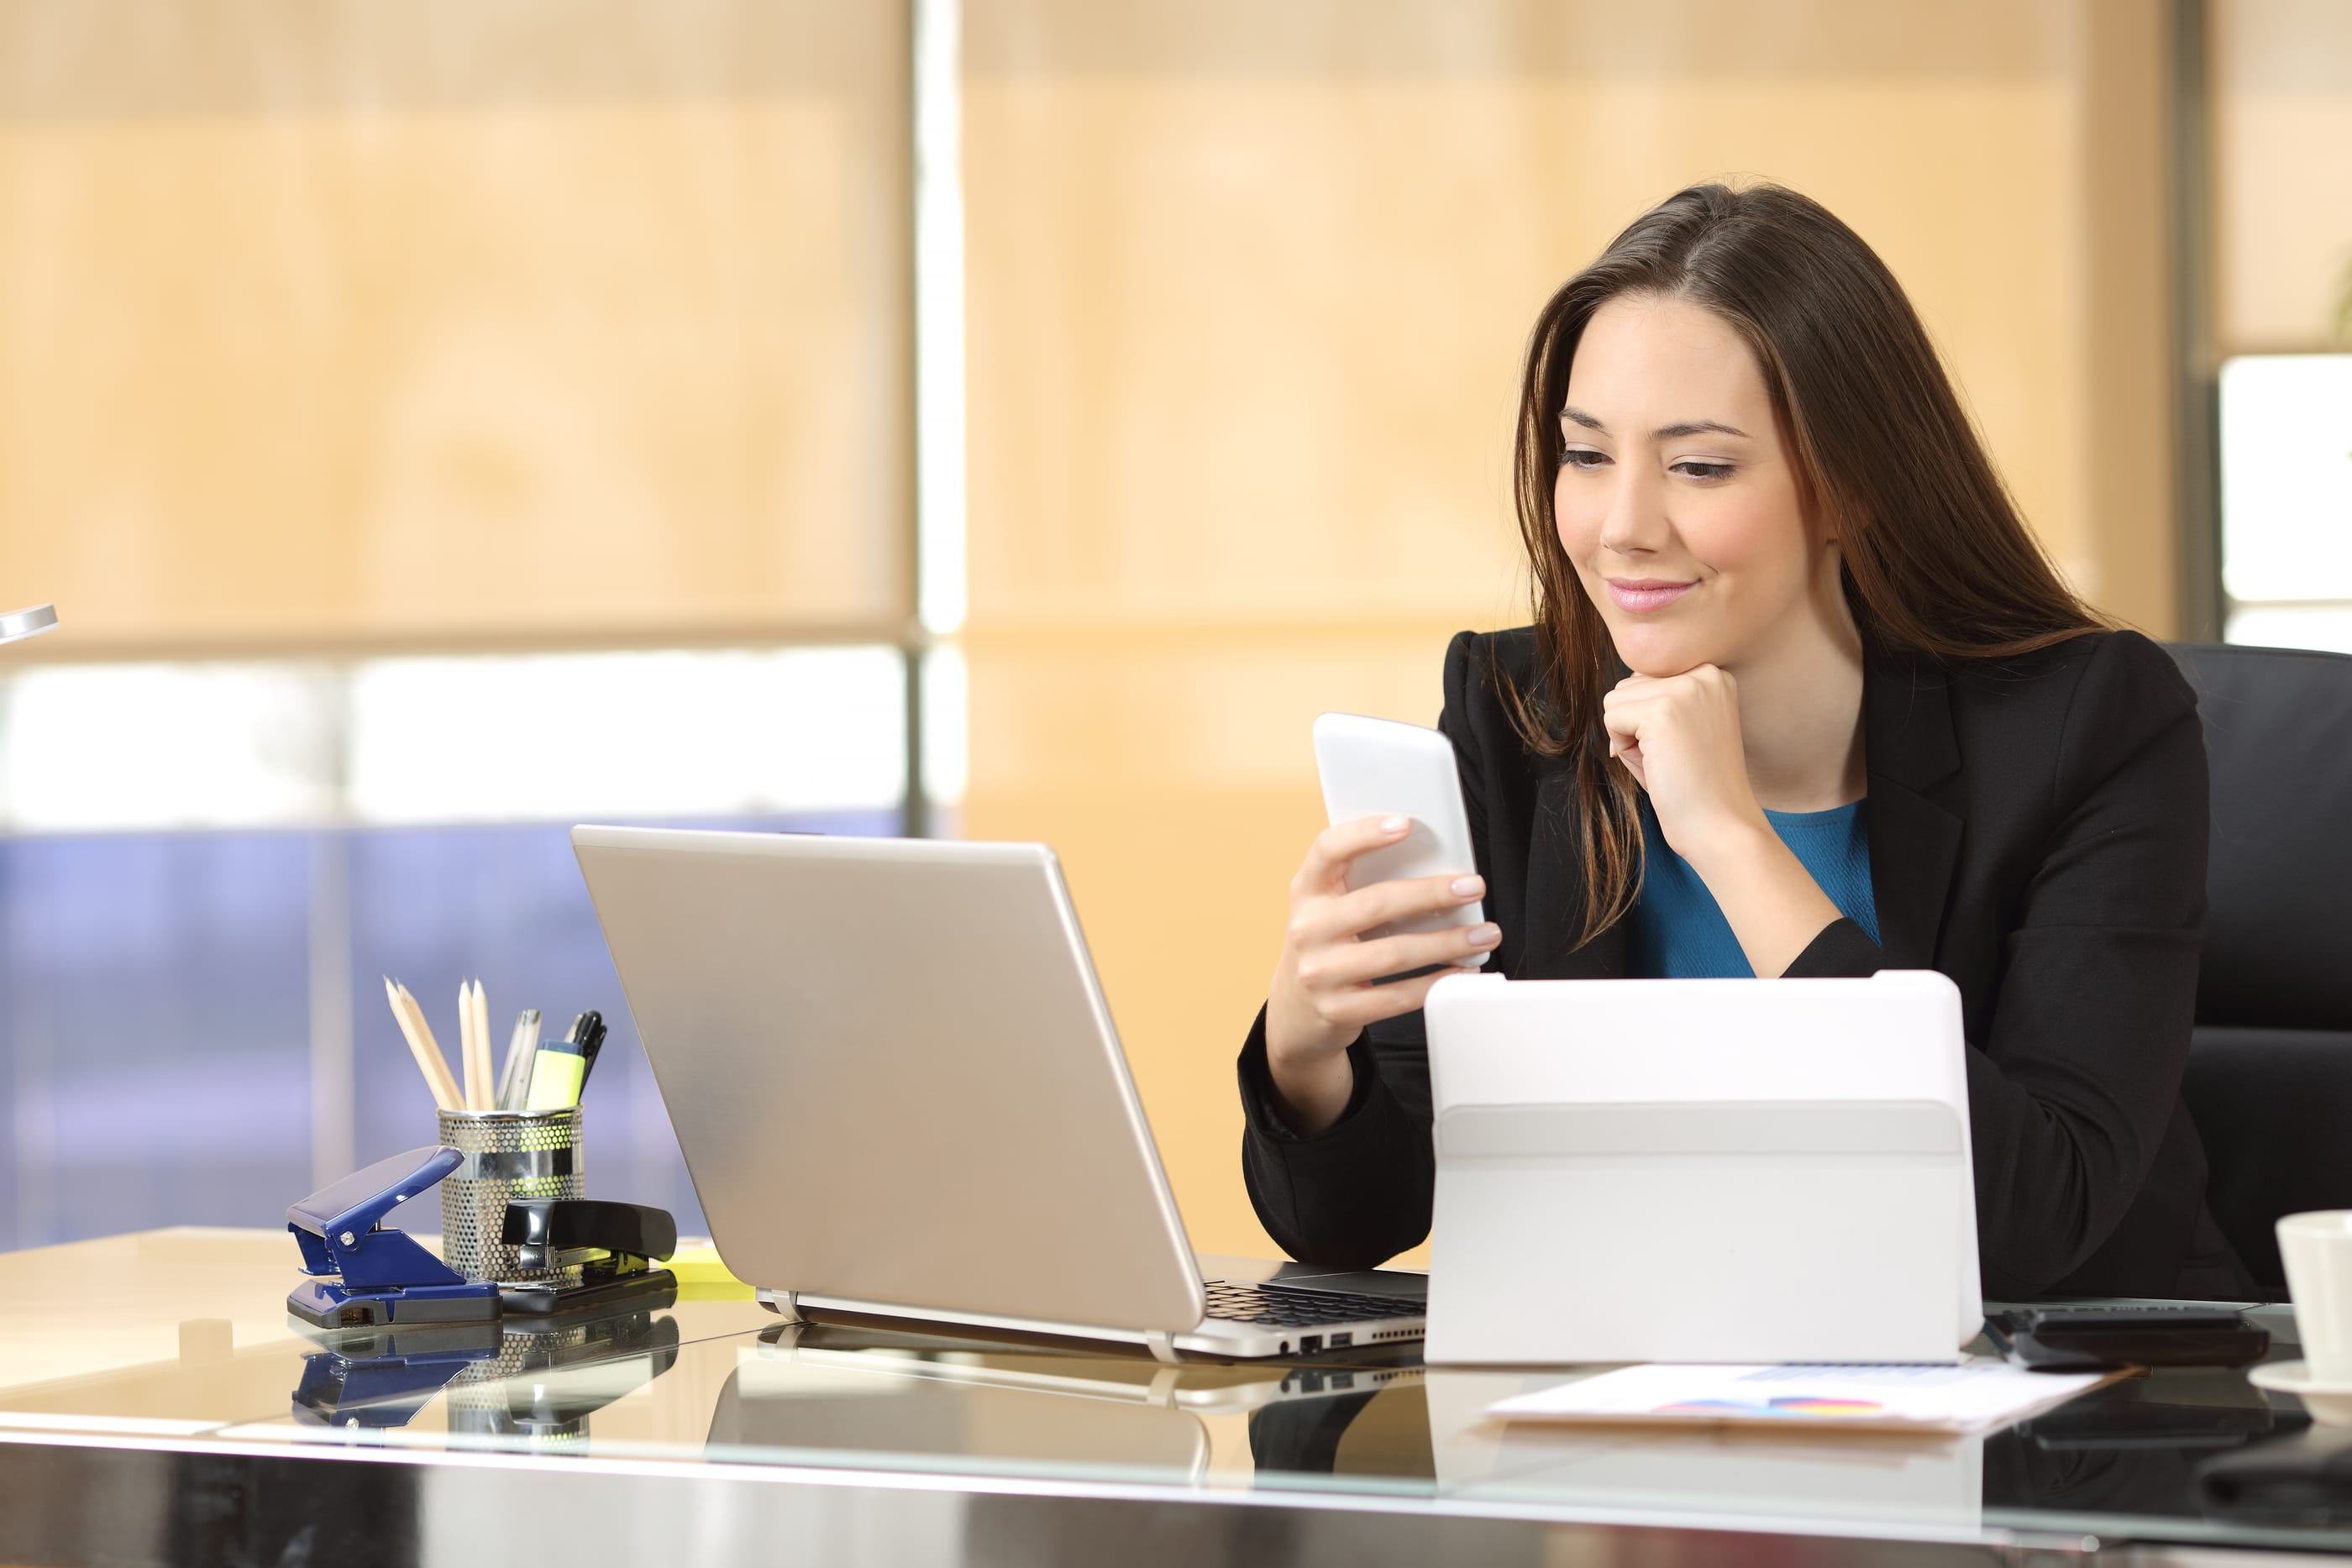 Should You Let Your Employees BYOD?